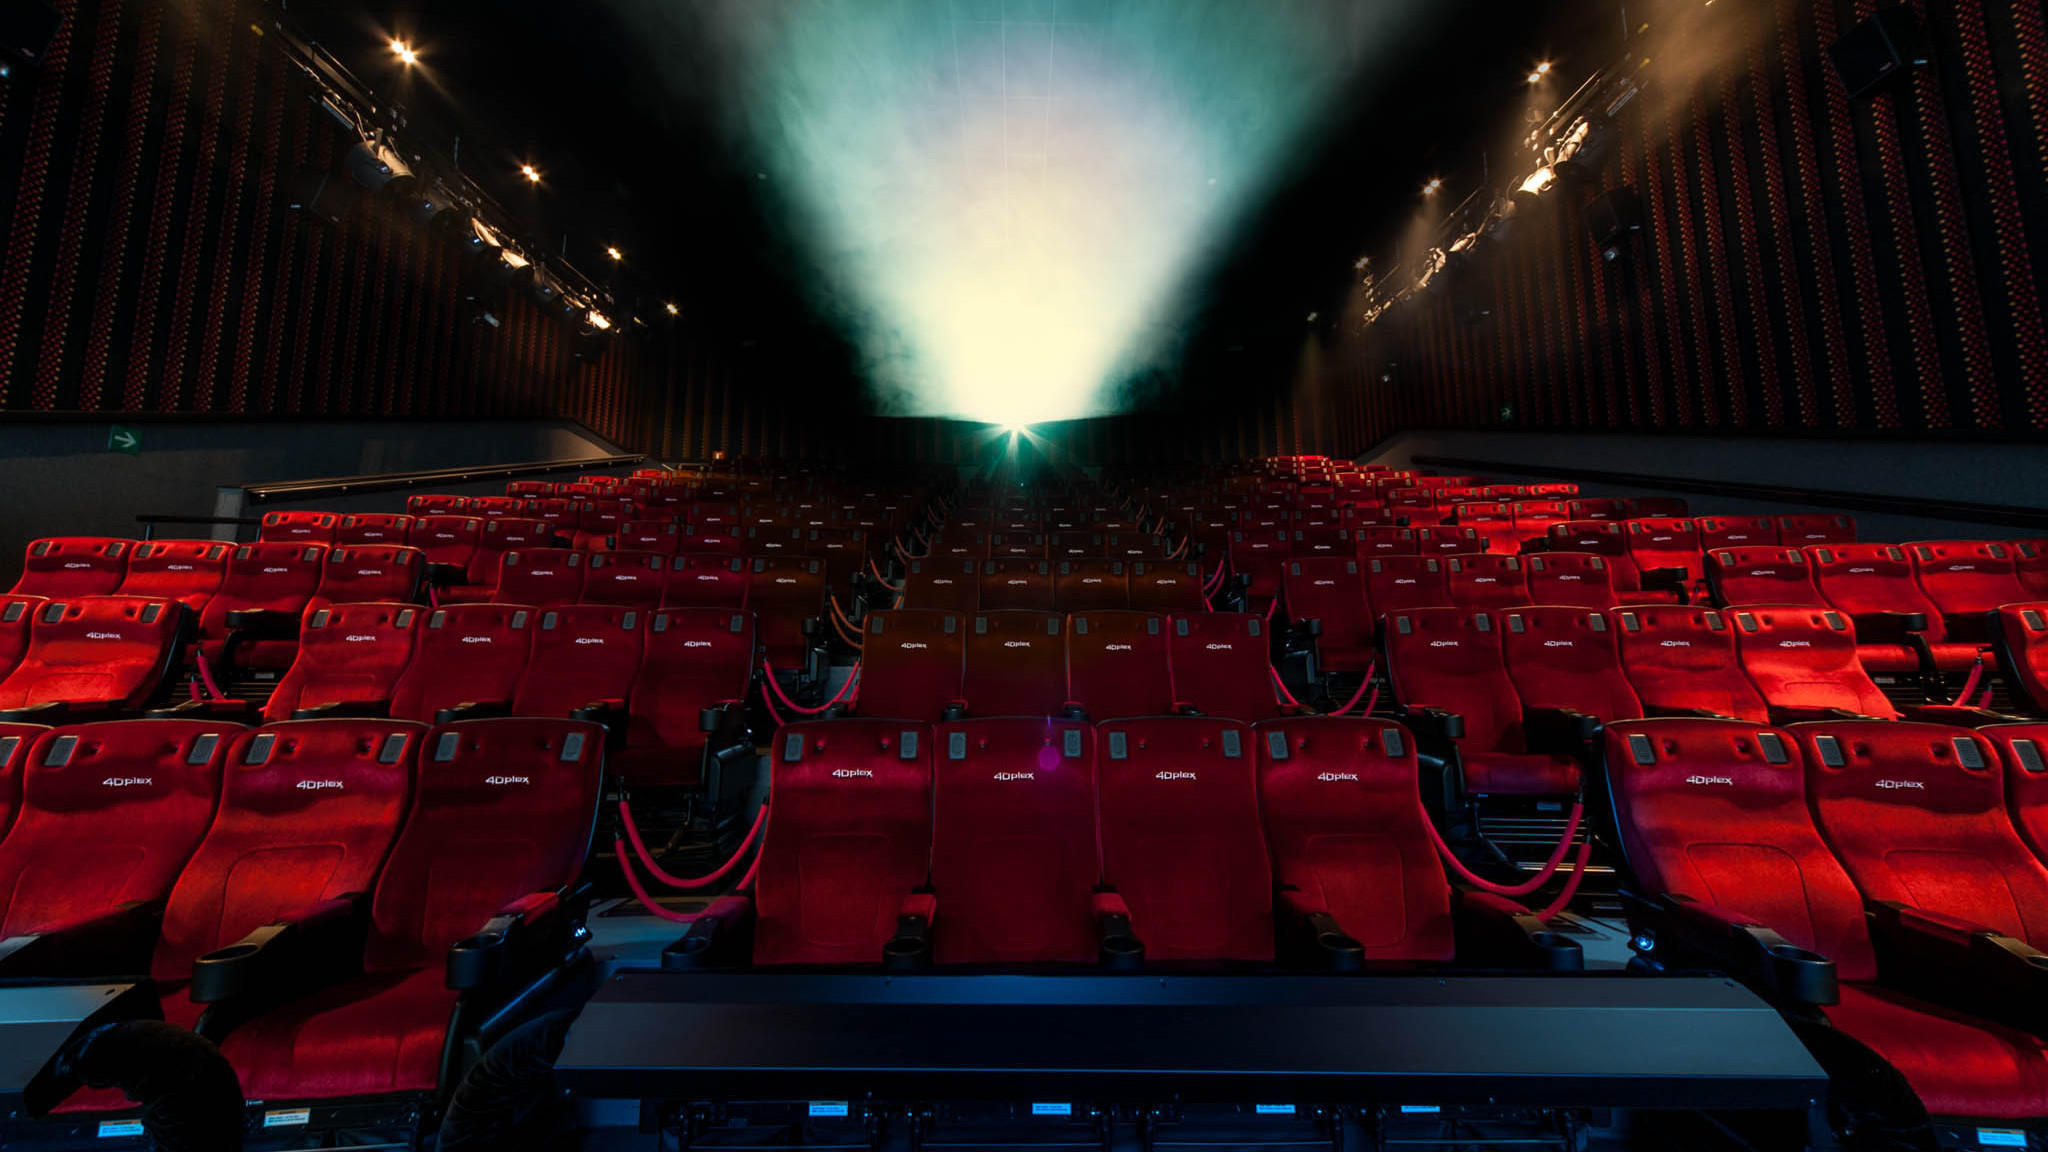 Theaters That Call Themselves 4 D Use Lights Moving Seats Fog And Even Sprays Of Water Air To Give Moviegoers A Unique Experience One They Hope